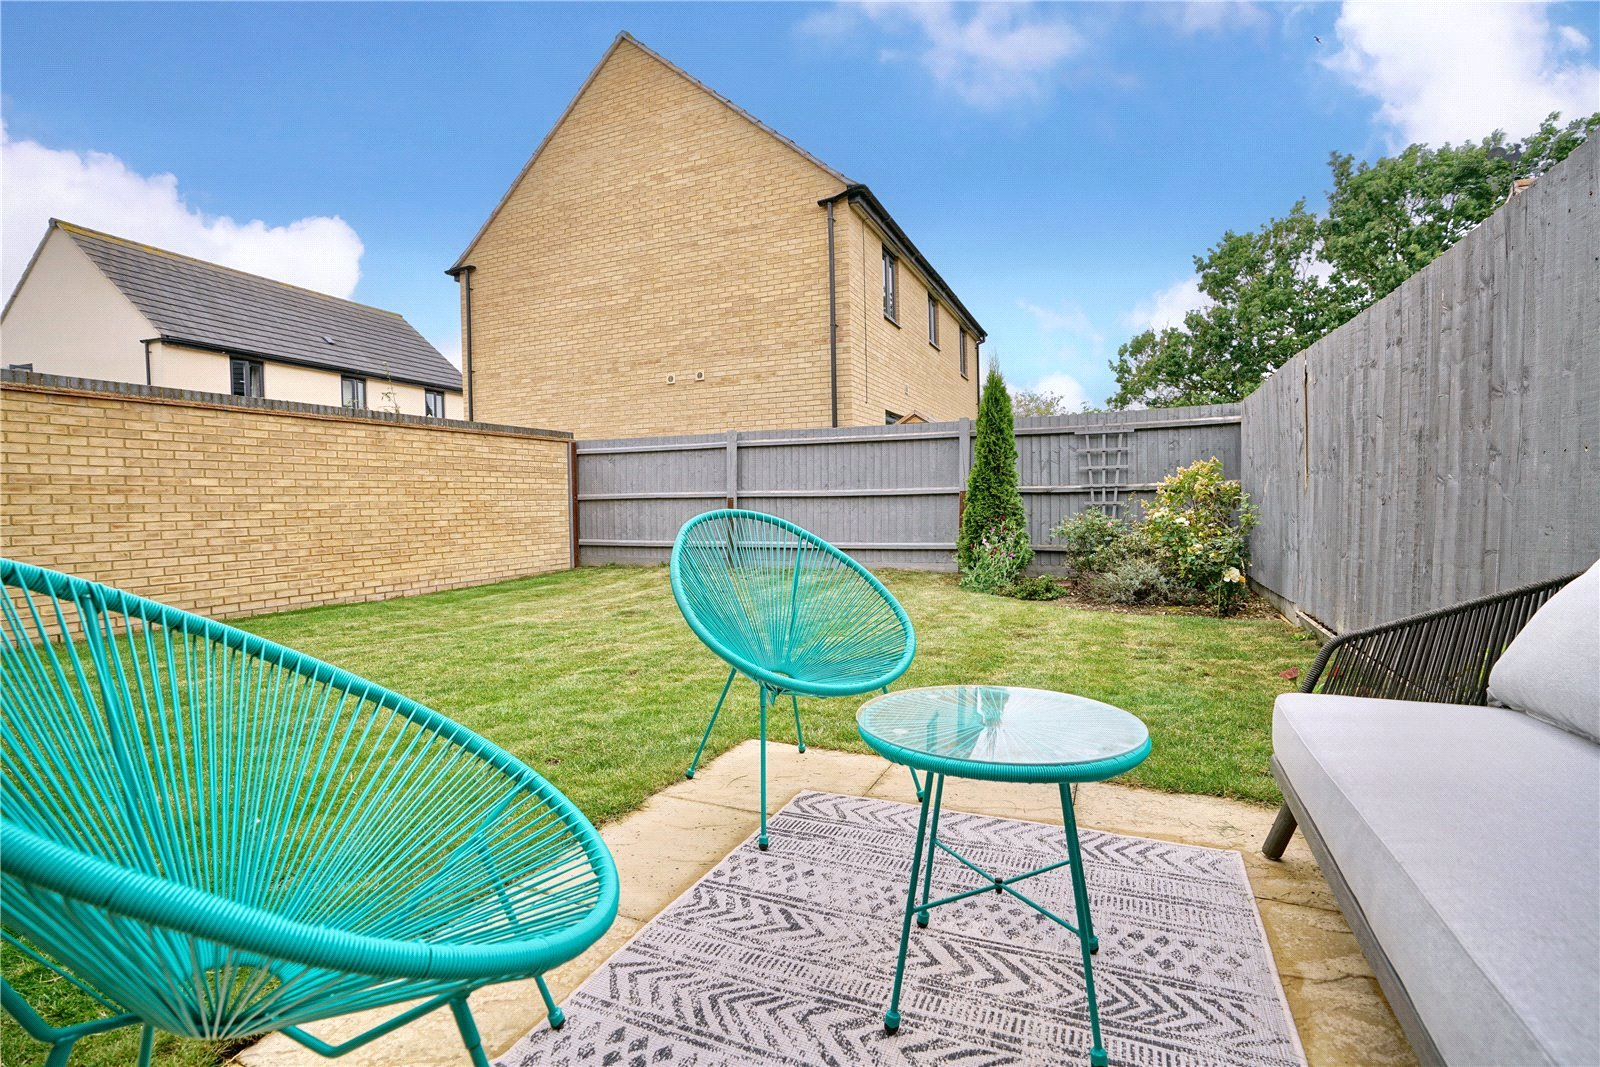 3 bed house for sale in St. Ives, PE27 5DL  - Property Image 11